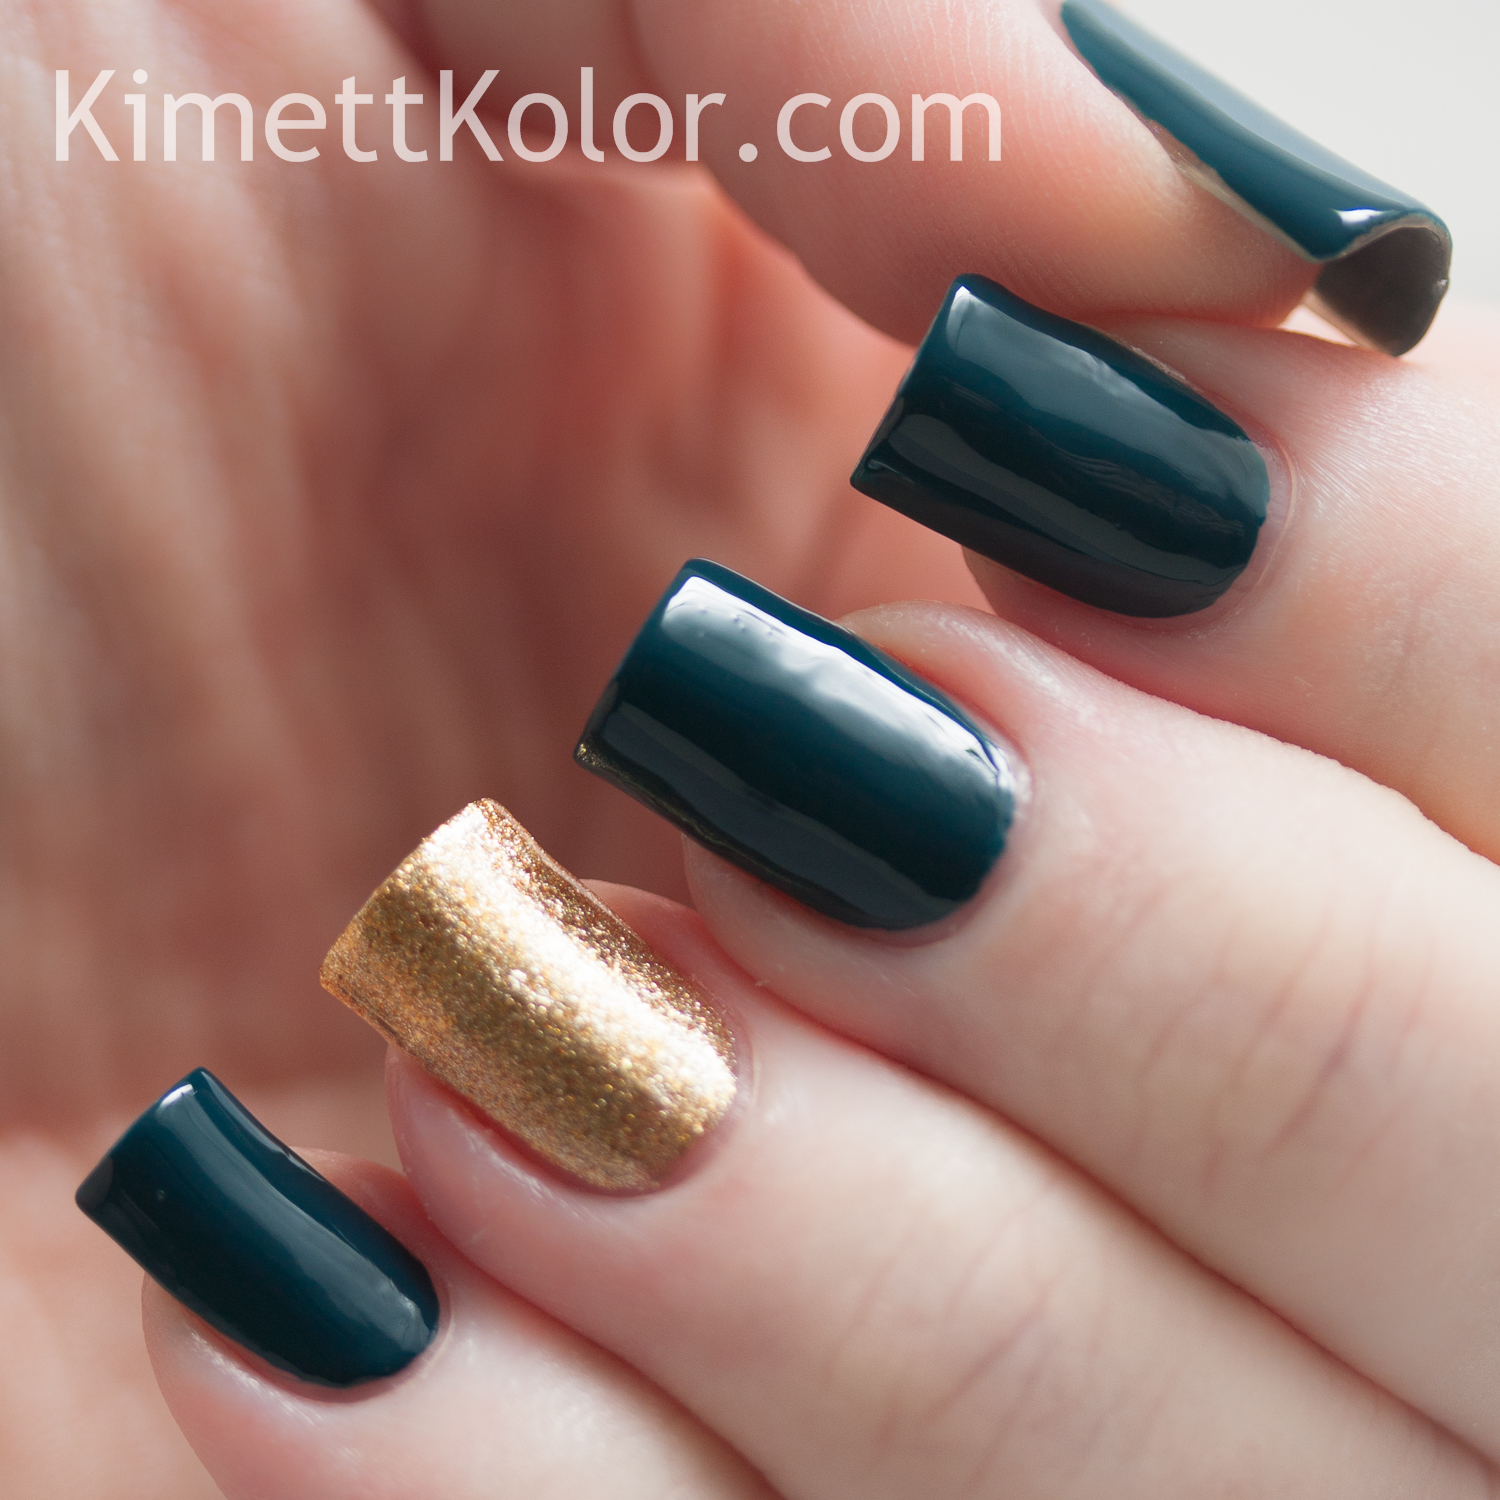 Mint Teal be Gold for New Year\'s Eve   Kimett Kolor